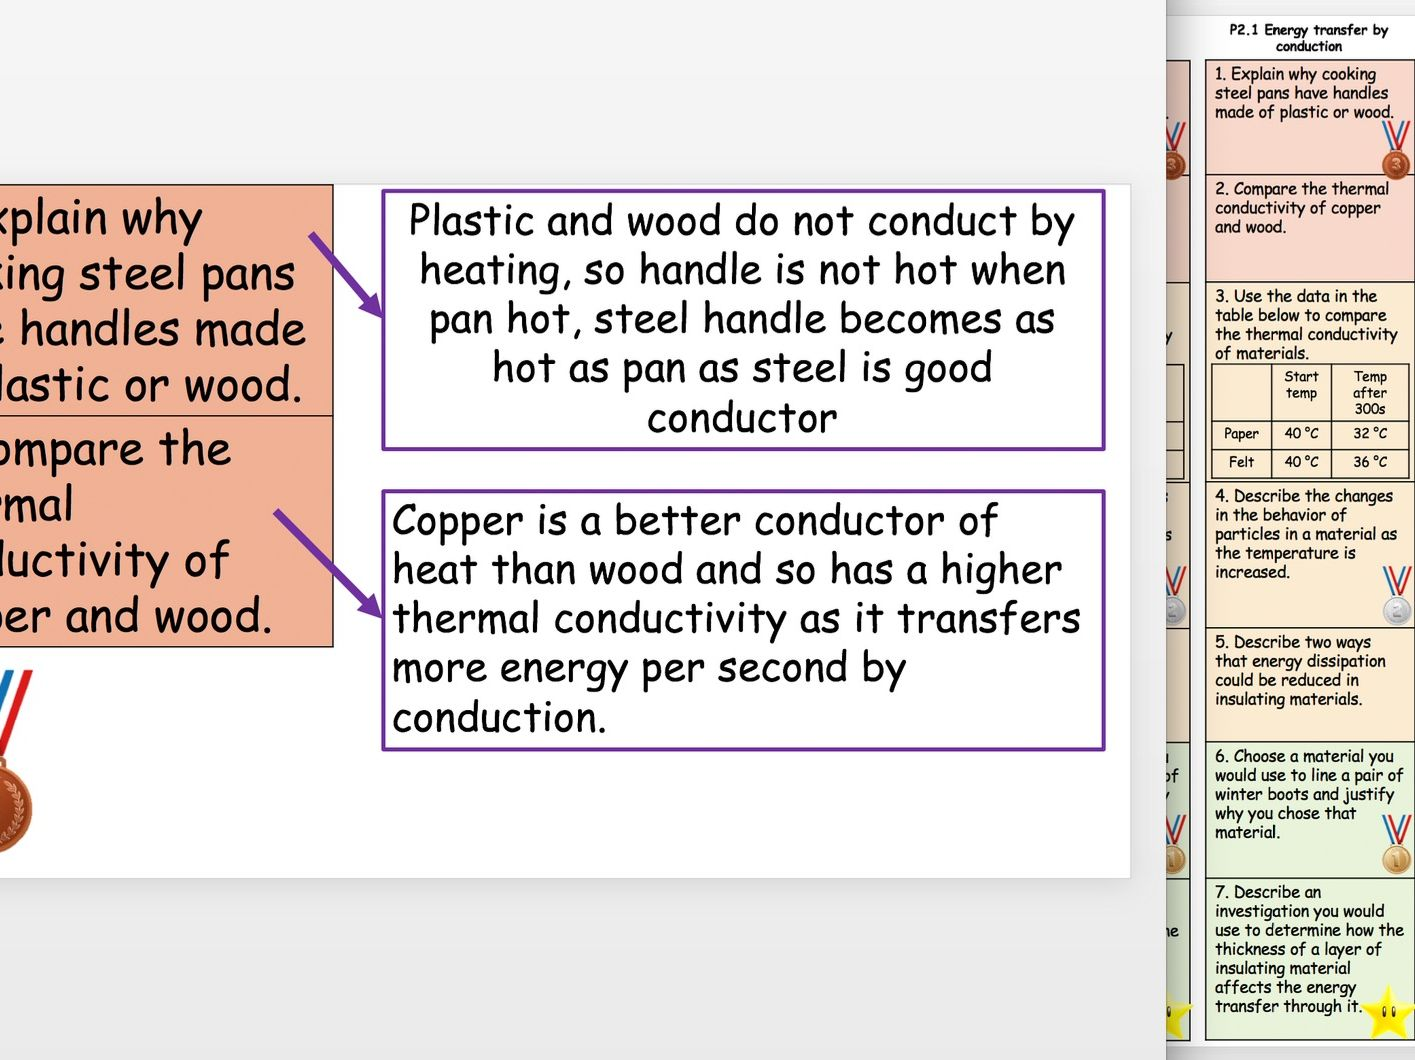 P2 - P4 Structure Strips and Answers